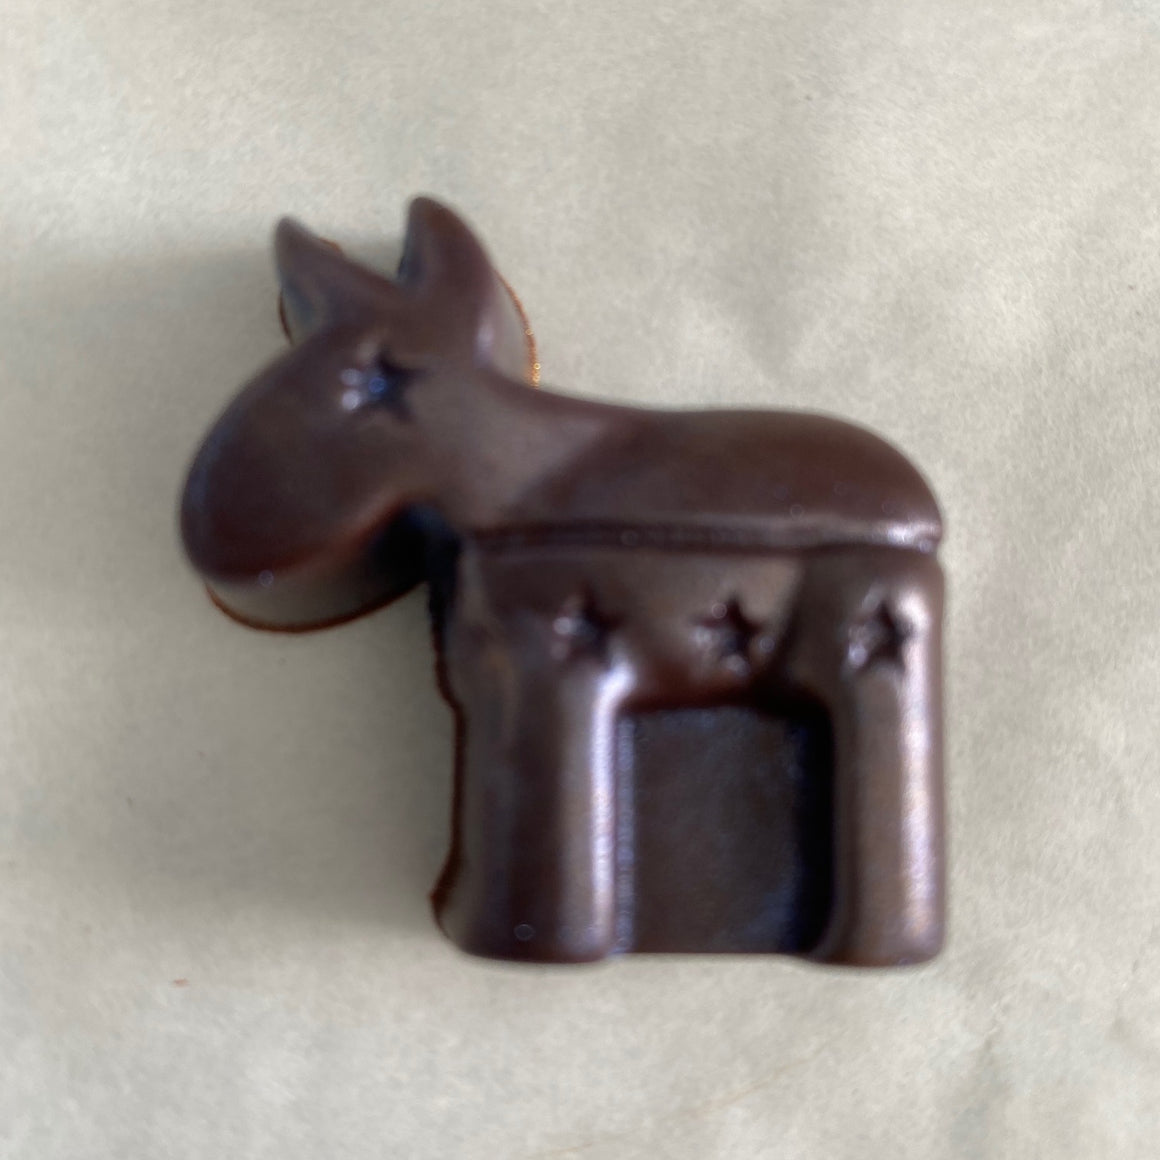 Dem Donkey - Single Origin, Ghana